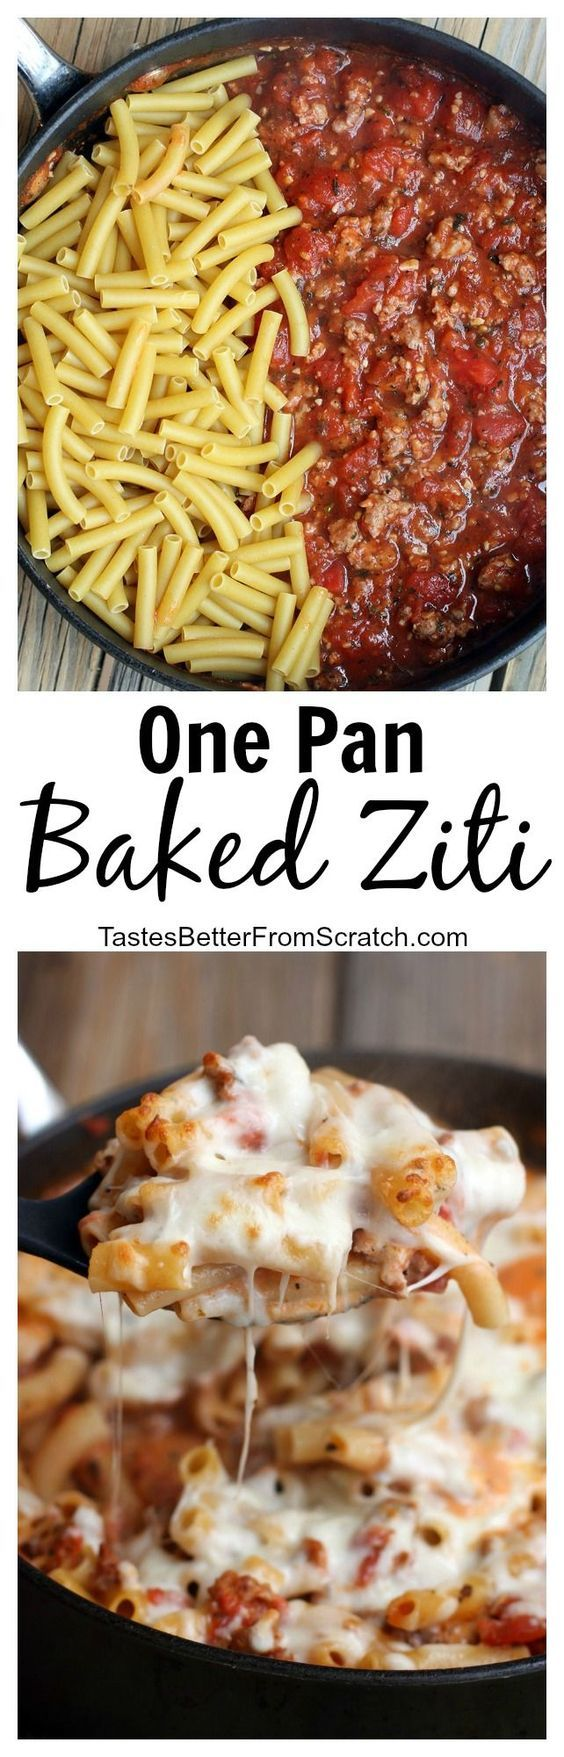 My family LOVES this easy simple One Pan Baked Ziti recipe. It's fast and delicious--ready in less than 30 minutes!